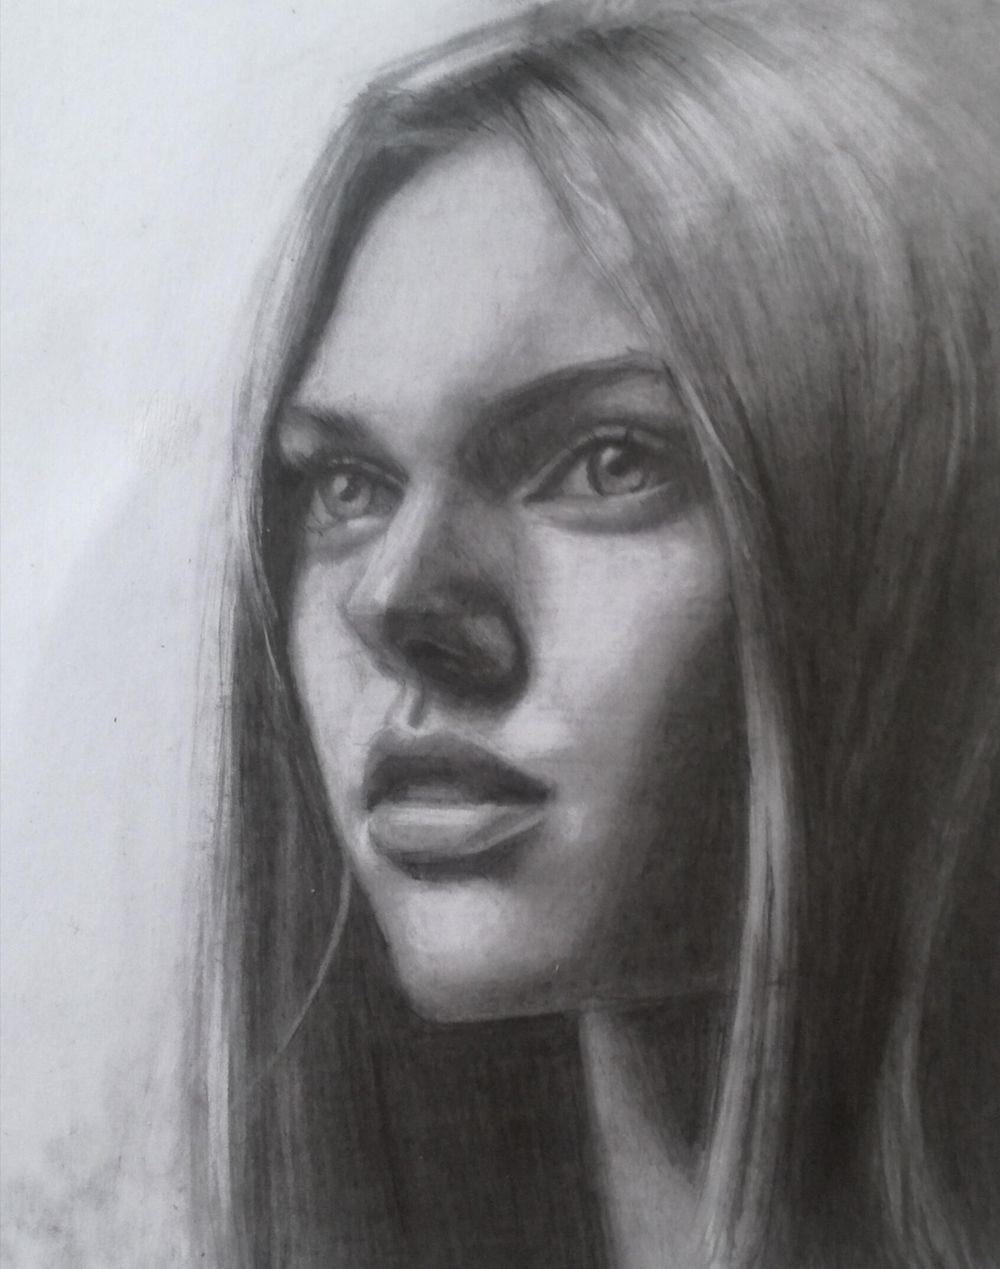 Pencil Drawing - NEW - image 6 - student project